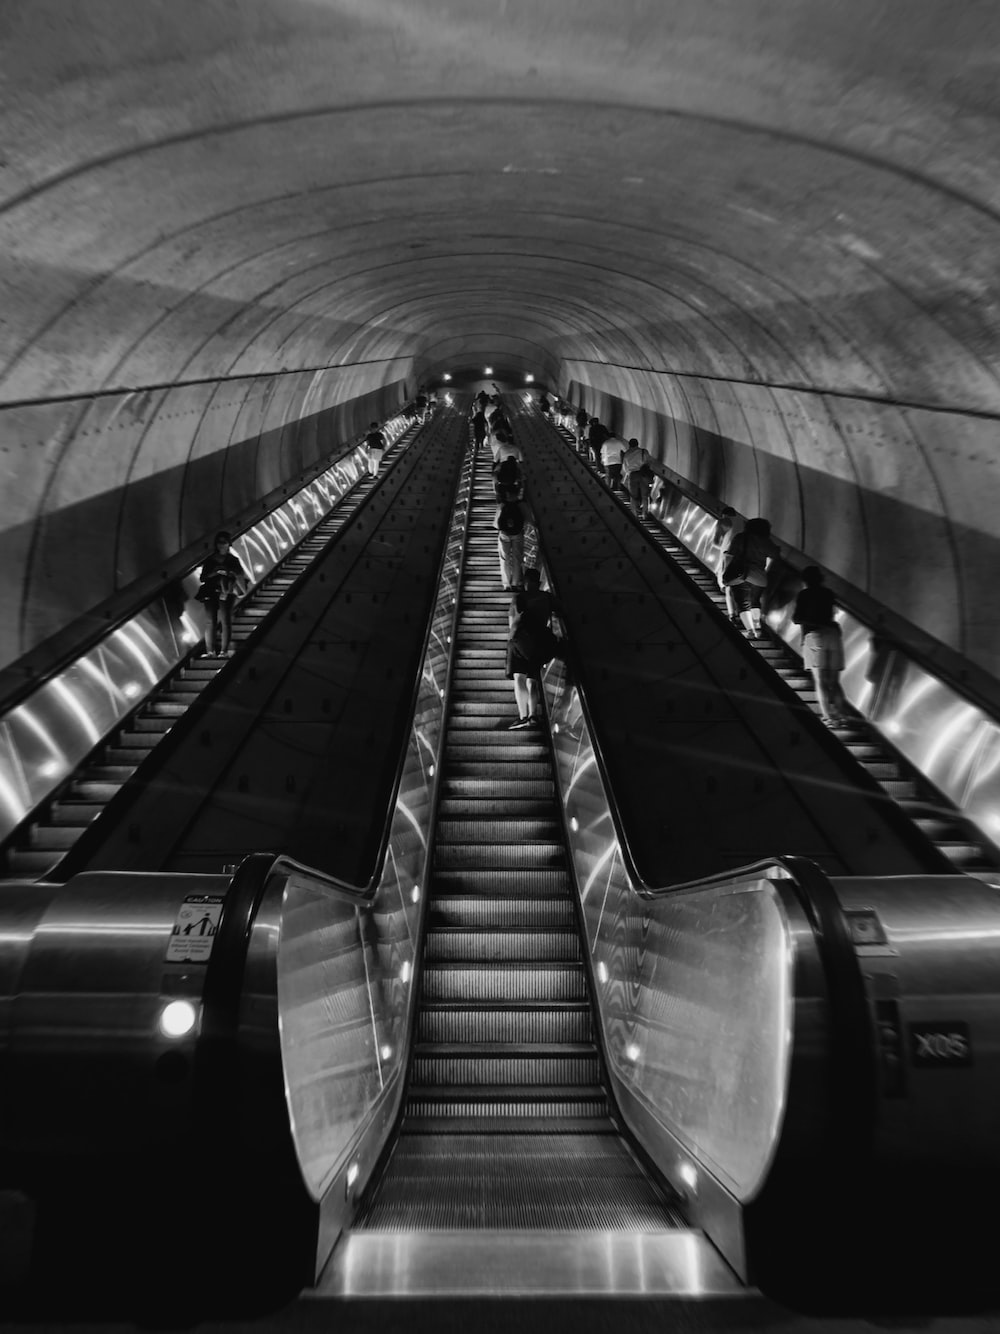 grayscale photography of escalators with no people